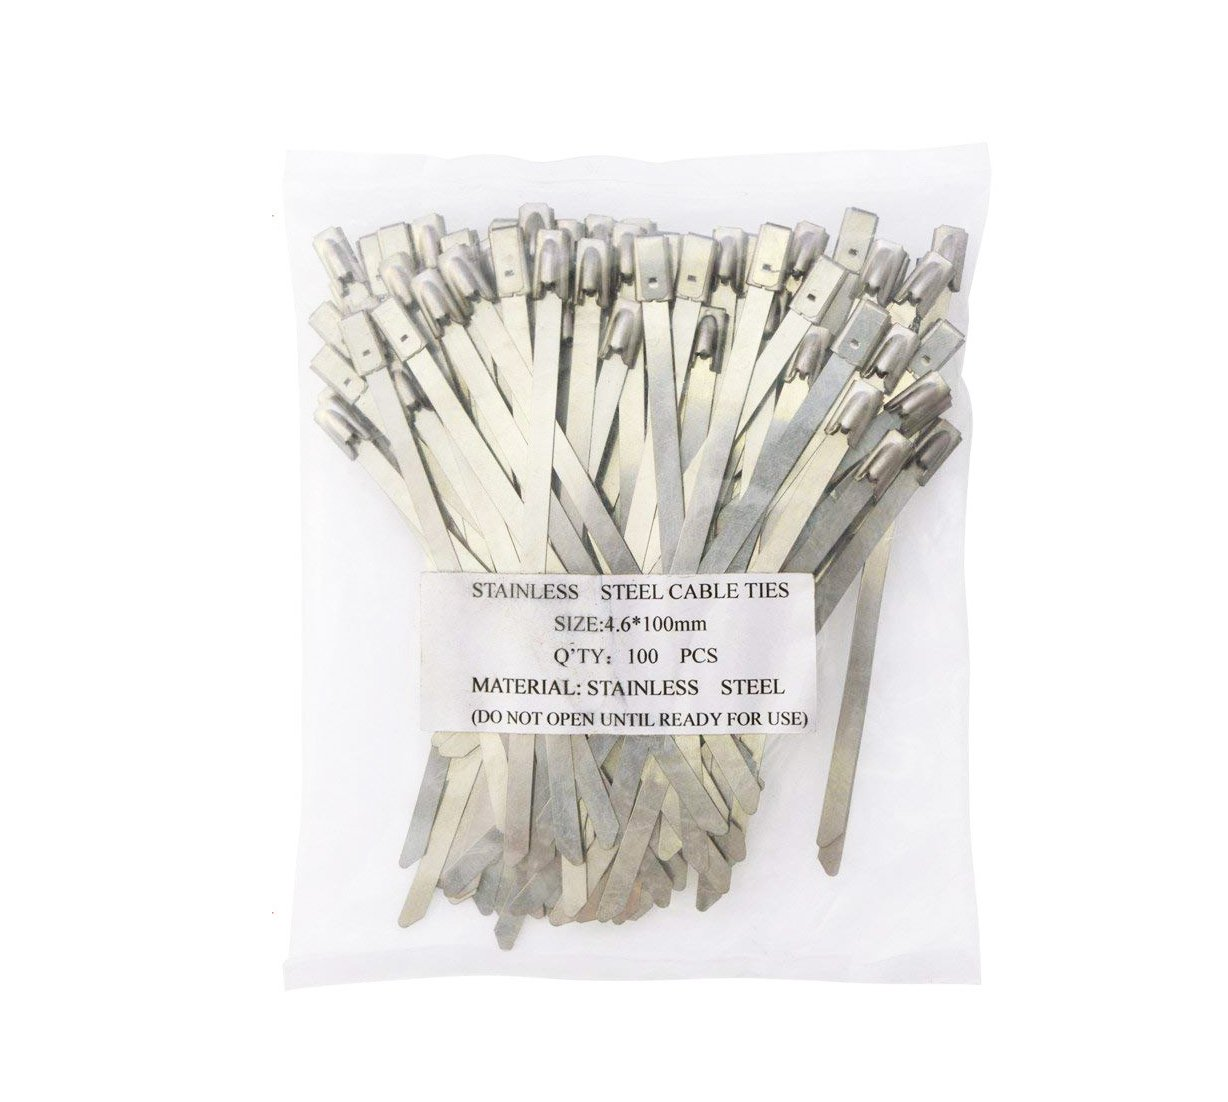 YXQ 100Pcs Cable Zip Ties 9.8x 4.6mm Cable Management Organizer Stainless Steel Disposable Exhaust Wrap Coated Locking